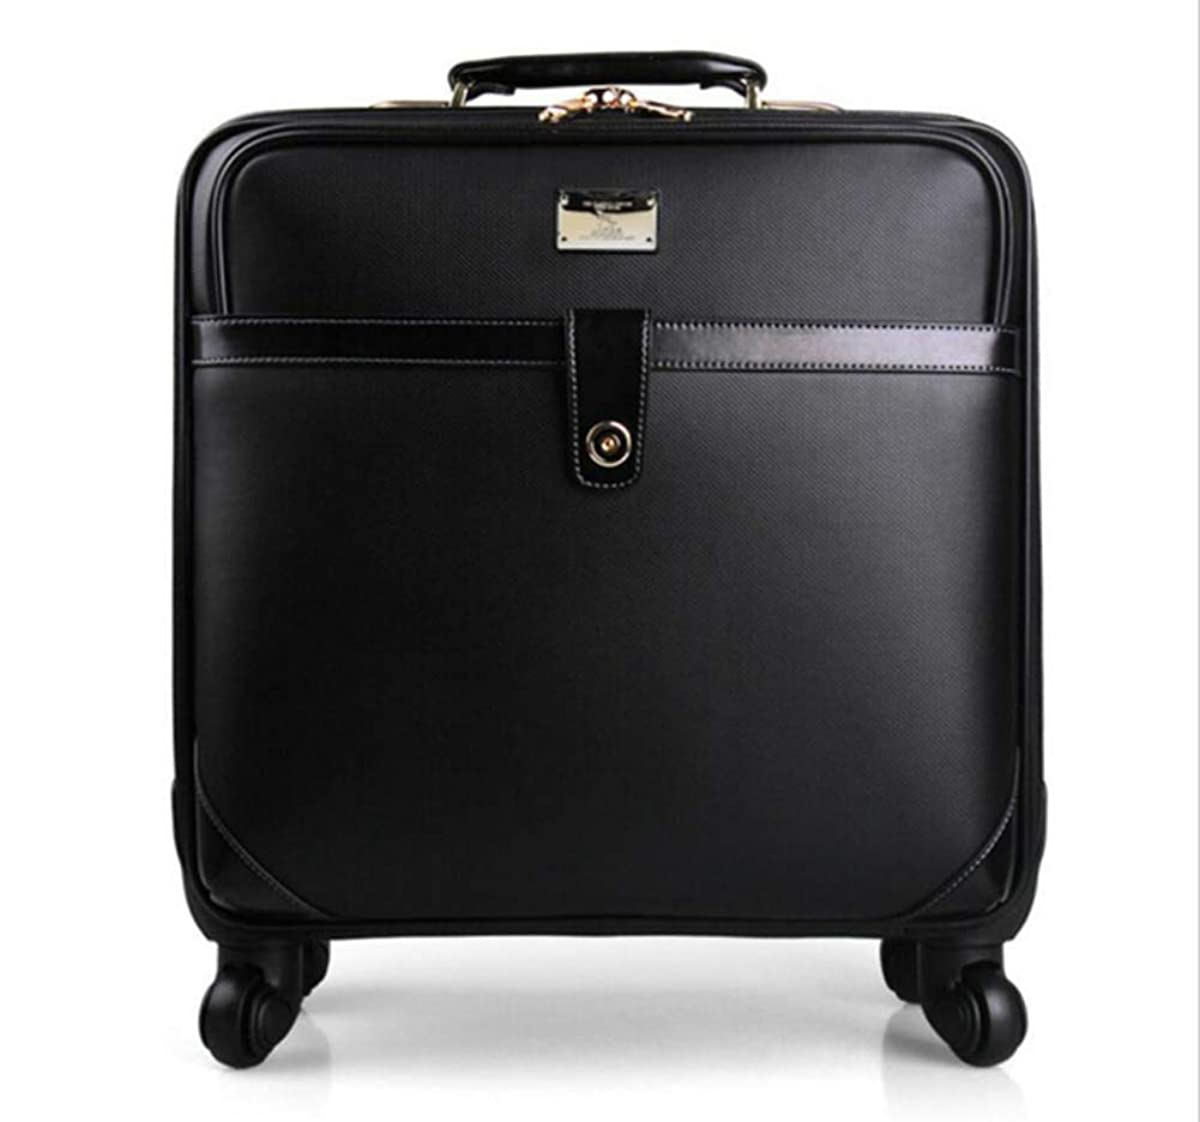 CHERRIESU Wheeled Luggage Business, Laptop Trolley Bag 16 inches /20inches Computer Bag on 4 Wheels Rolling Laptop Bag Suitcase Carry On Luggage